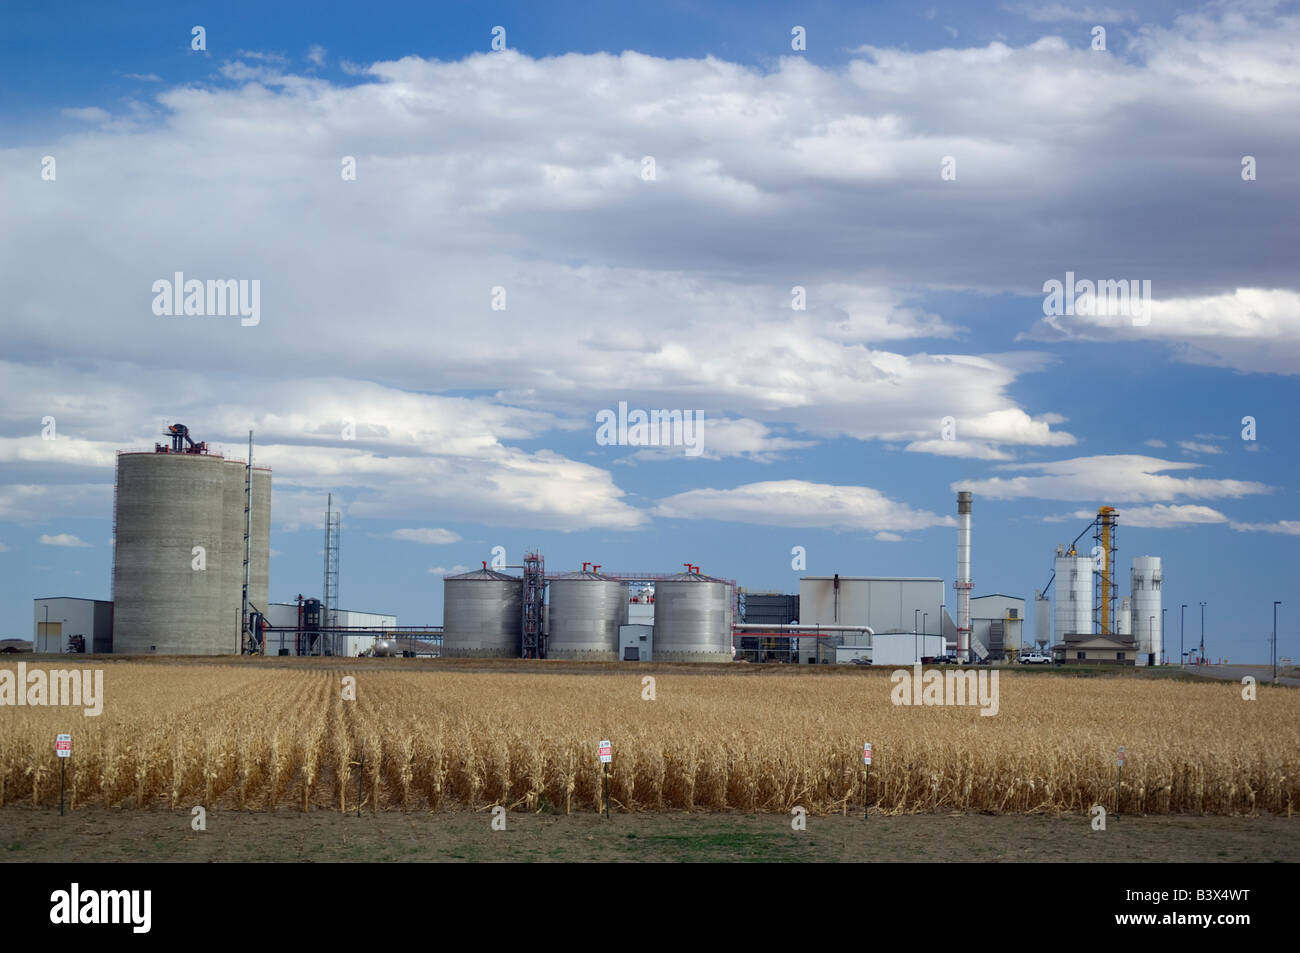 ethanol plant stockfotos ethanol plant bilder alamy. Black Bedroom Furniture Sets. Home Design Ideas